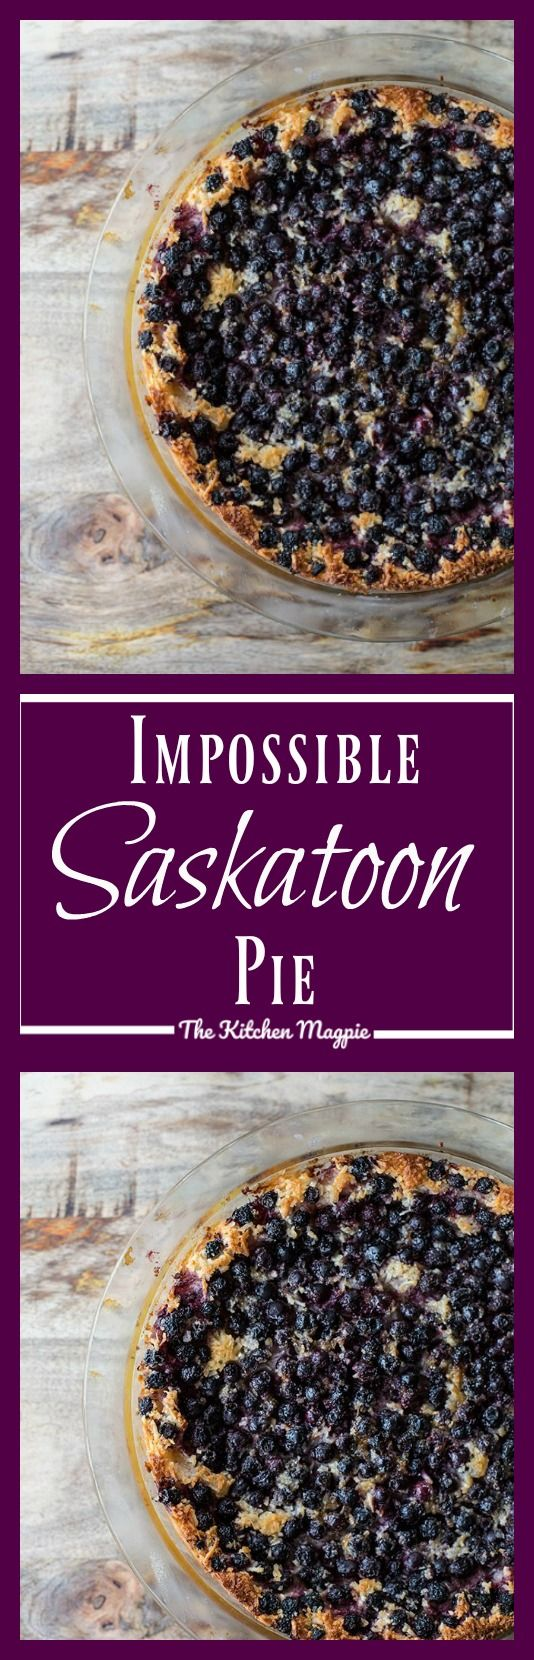 Impossible Saskatoon Pie - The Kitchen Magpie